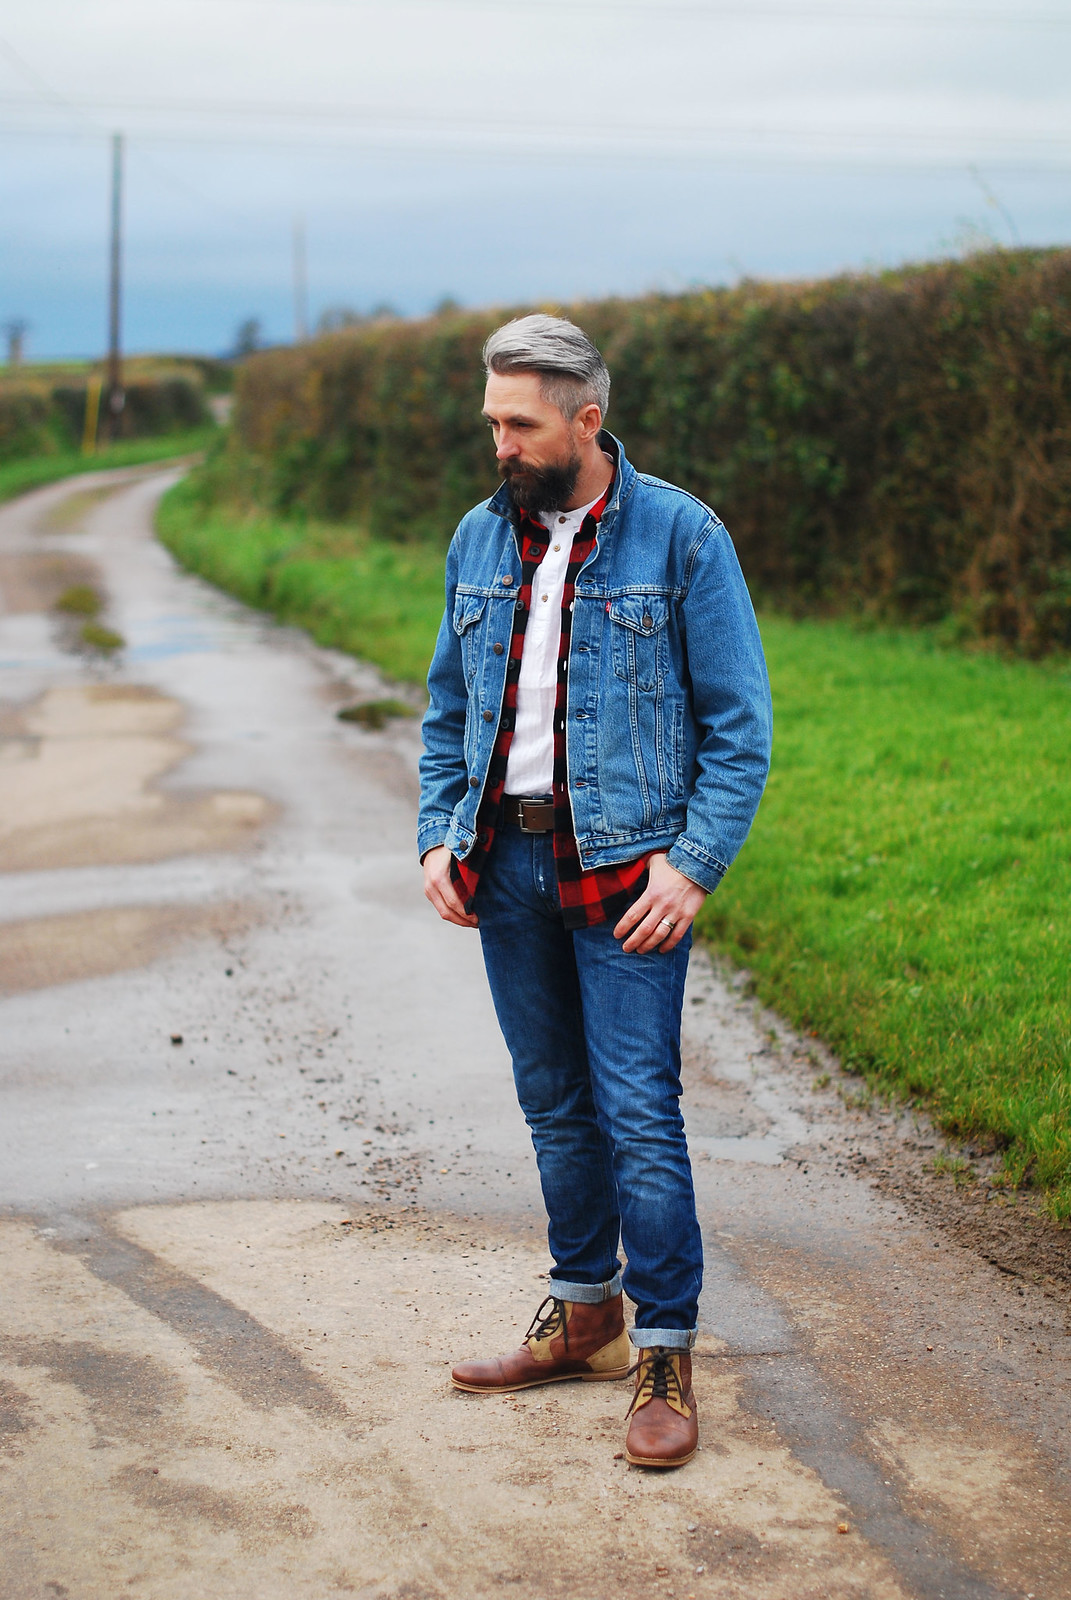 Casual weekend outfit \ denim jean jacket \ check (buffalo plaid) shirt \ skinny jeans \ brown lace up boots | Silver Londoner, over 40 menswear